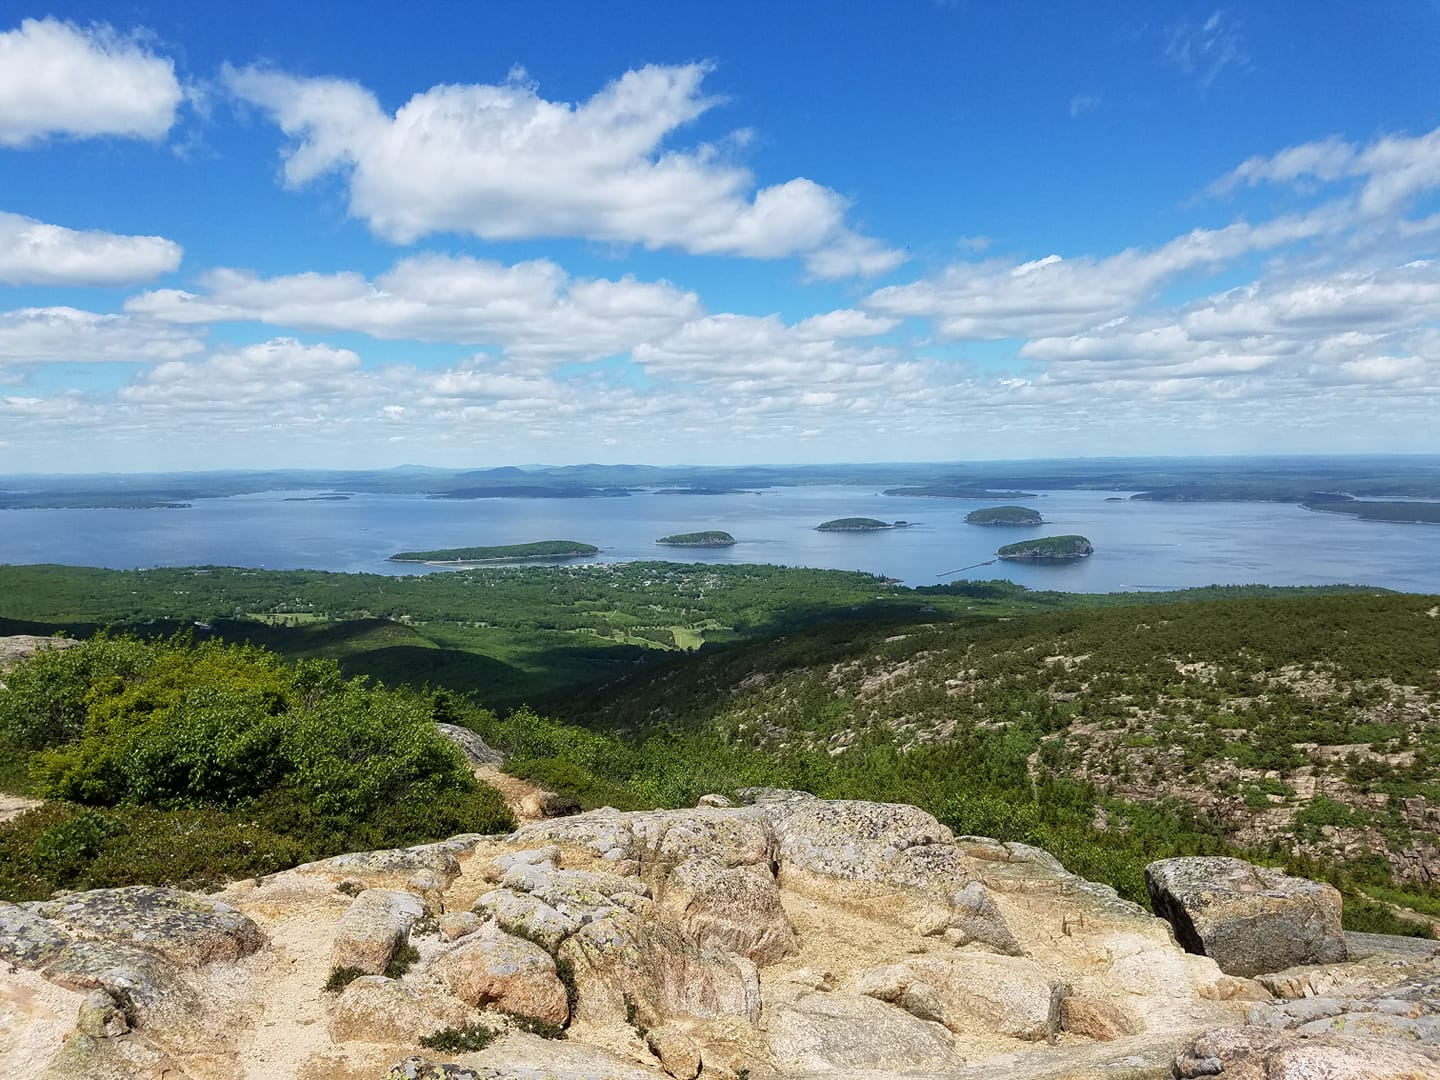 tnaa traveler at Cadillac Mountain